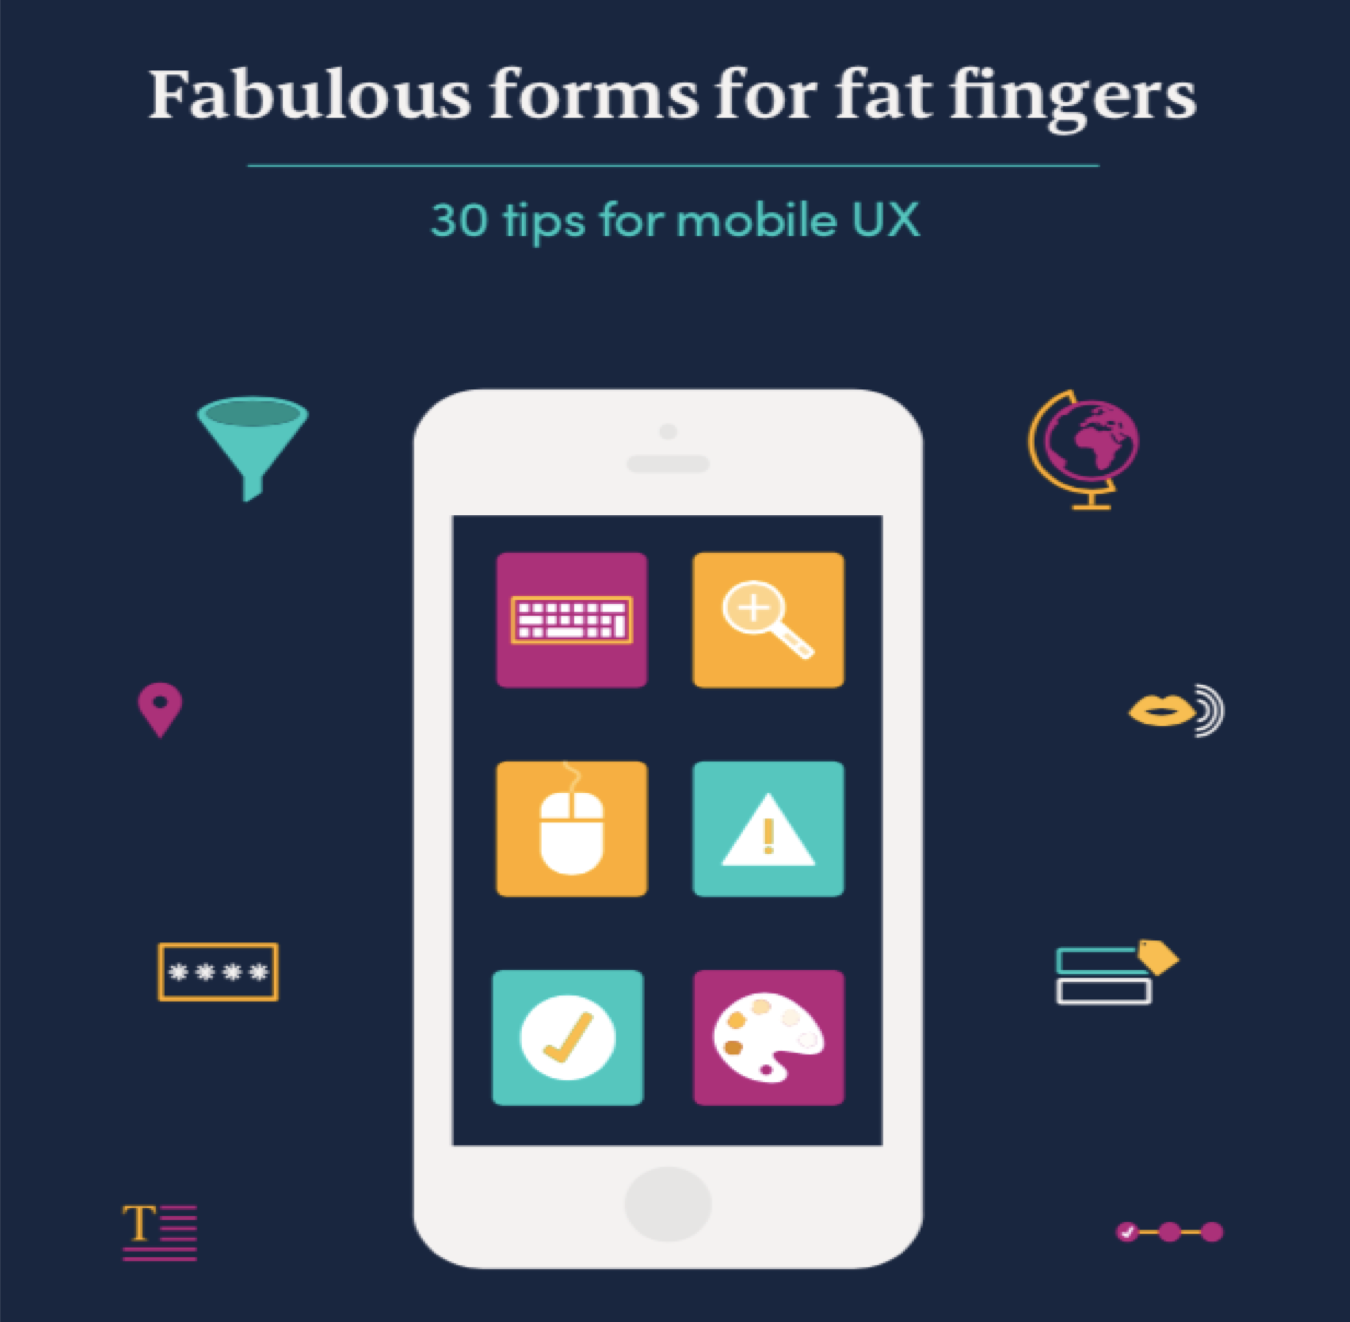 Fabulous forms for fat fingers - the definitive guide to mobile UX